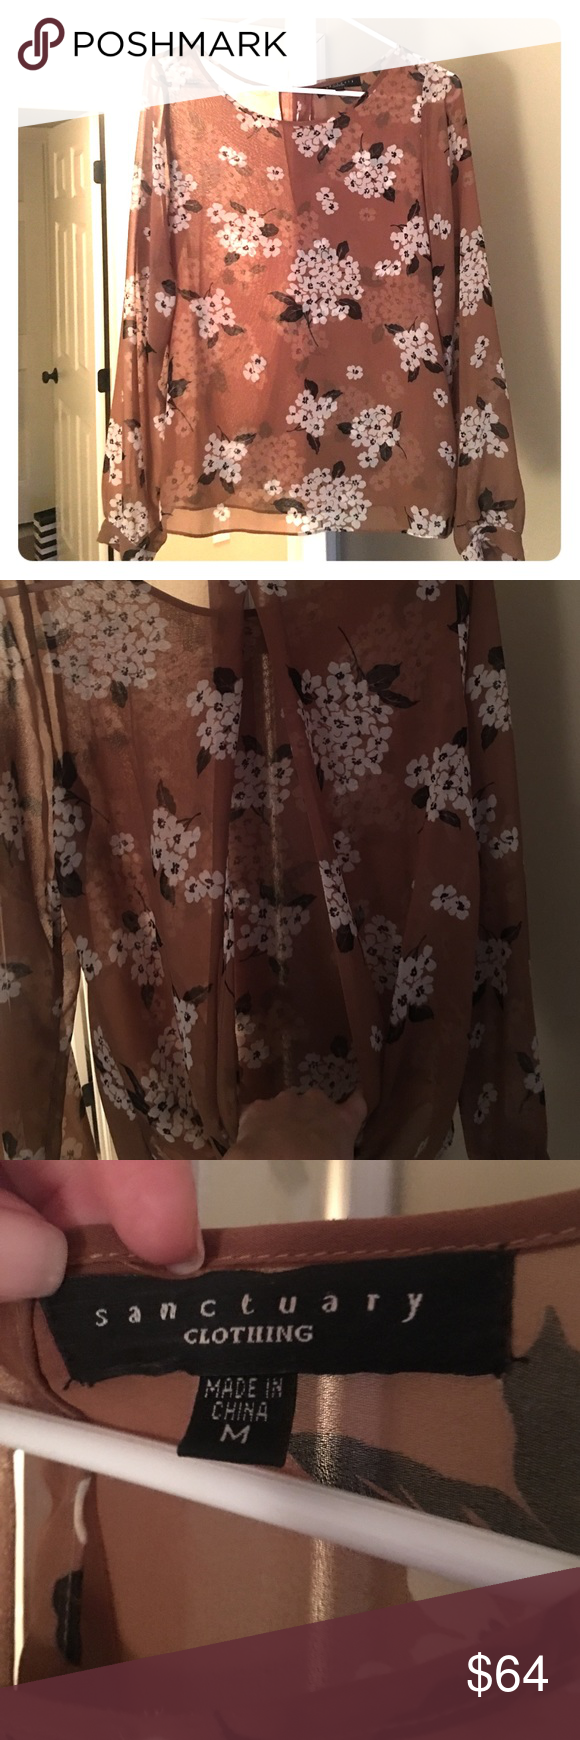 Sanctuary Split back top A sheer blouse with a back that opens in the back. Only worn 2x. Color didn't really flatter me otherwise I love this shirt! Sanctuary Tops Blouses